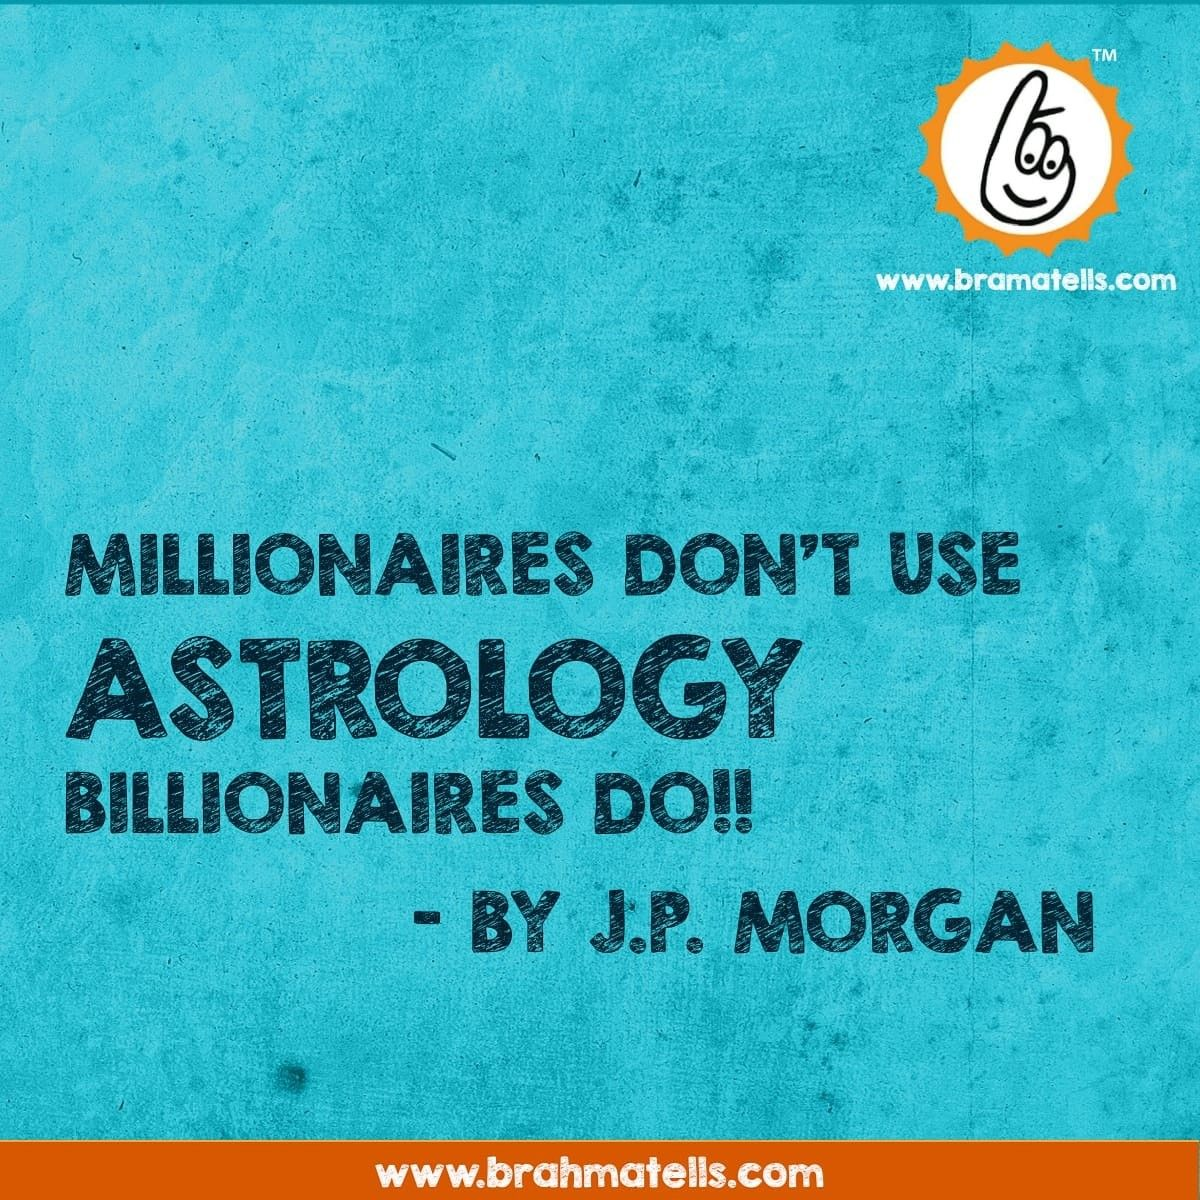 Difference between millionaires and billionaires